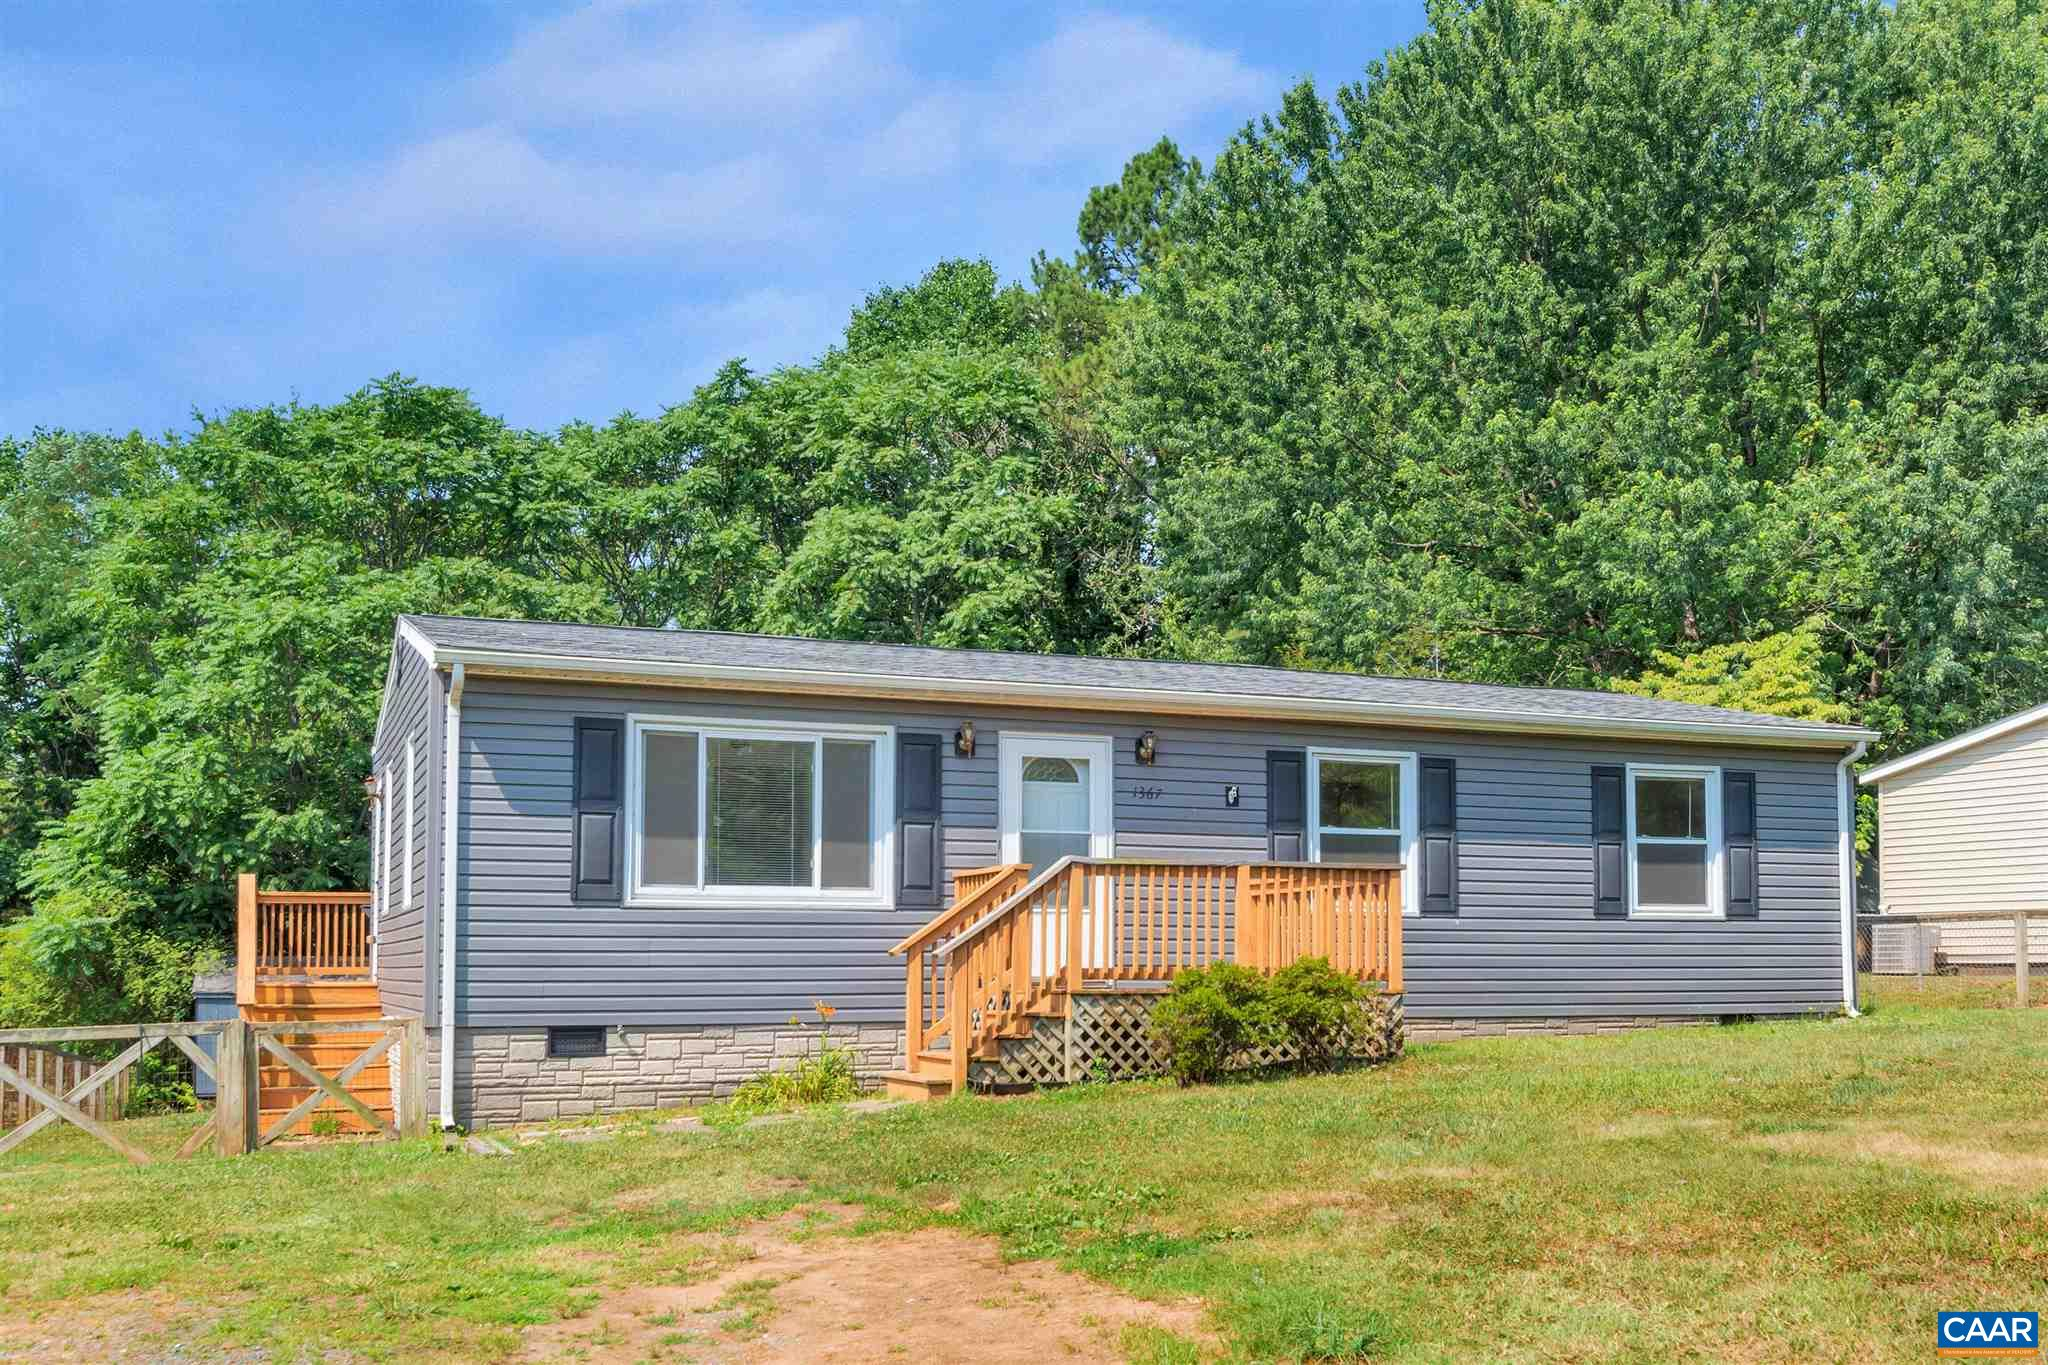 Don't miss this move in ready 3BR home in the heart of Crozet. Mountain views! Home had roof, AC, gas furnace replaced in 2015 as well as an updated bathroom at that time. Kitchen was updated in 2013. Large rear deck that looks onto fenced back yard with mature trees backing up to a wooded area. Plenty of room for an addition. Minutes from downtown Crozet shopping, breweries, restaurants, parks and great Western Albemarle schools!